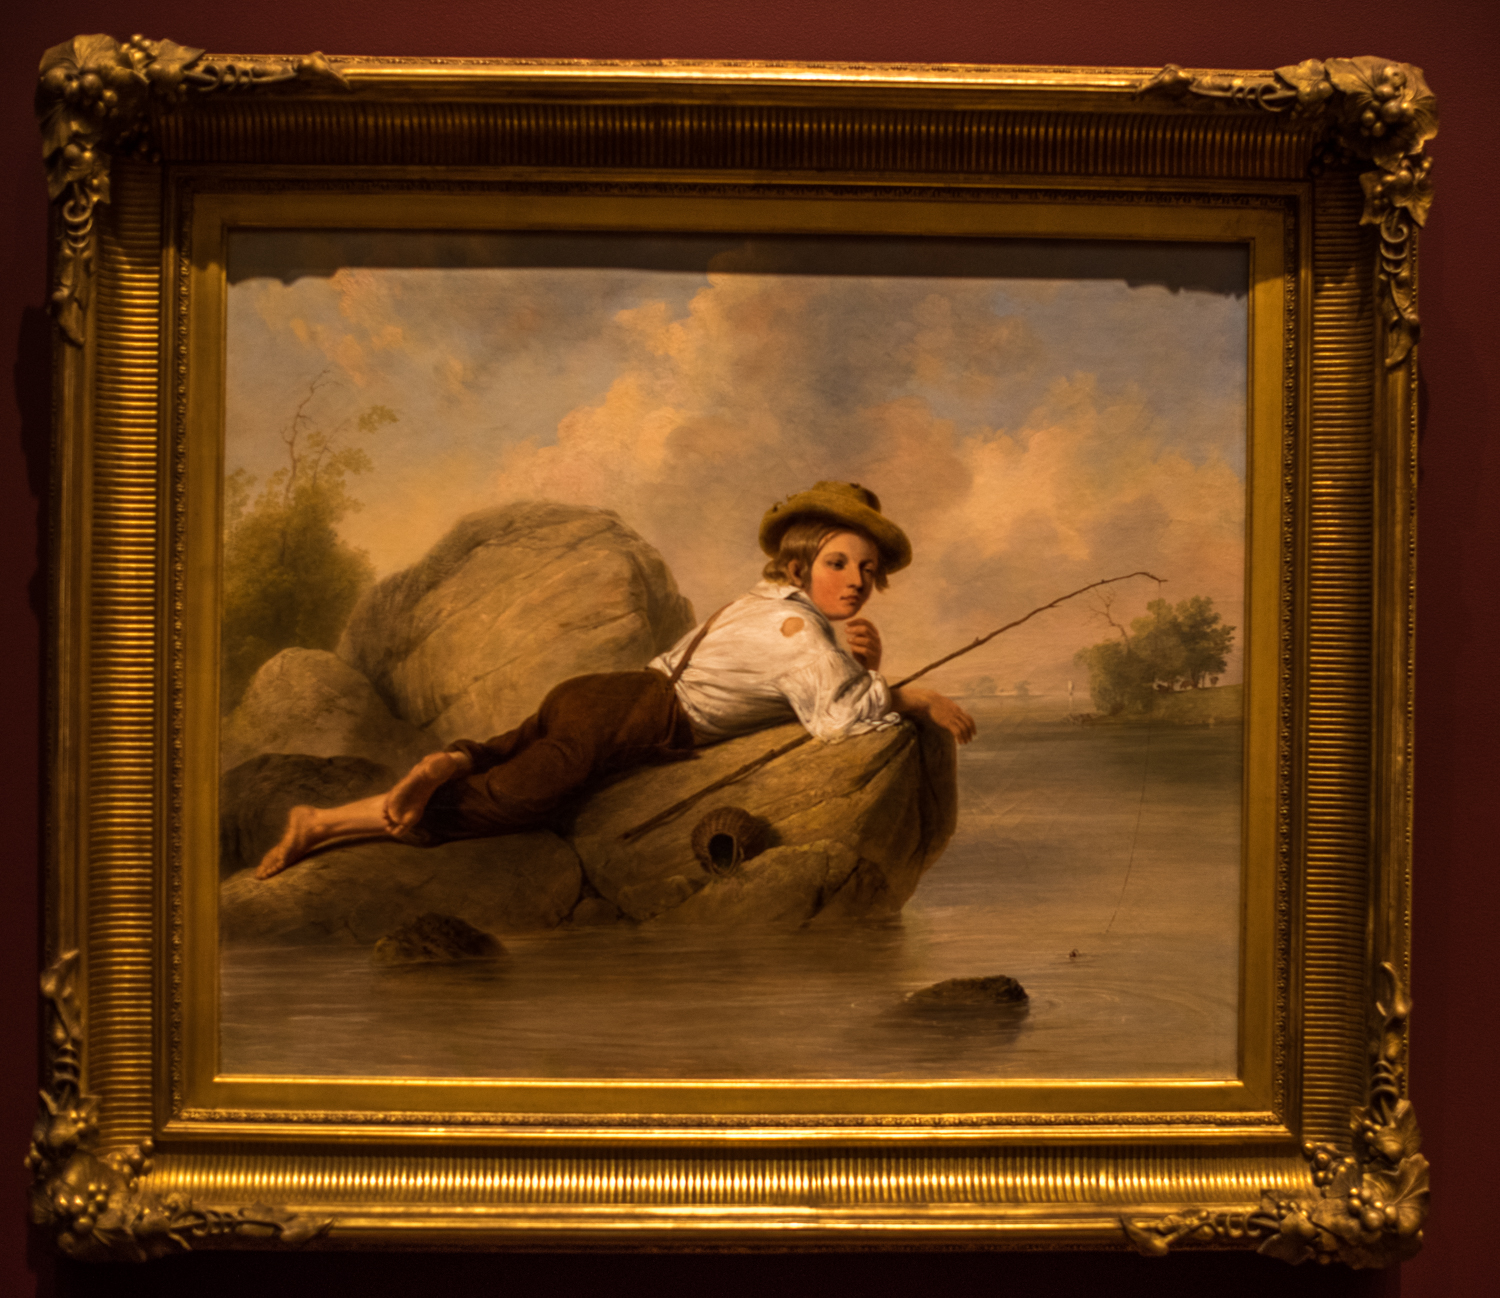 """A Lazy Fisherman , 1844 by John Gadsby Chapman, (1808-1889, oil on canvas. From the information tag: """"A critic in 1844 described this barefoot boy in ragtag clothing as """"laziness personified"""". His complete ease is embodied in his languid pose and heavy lidded eyes and echoed in the fallen basket, lax fishing line and sluggish river. This sentimental view, rendered with creamy, smooth brushwork, developed from John Gadsby Chapman's experience illustrating volumes of romantic verse. His talent for drawing is revealed in the boy's hat, clothing and especially in the out-turned foot. . . . Pleasing scenes of children were especially popular in the mid-19th century as they offered musings on childhood innocence and freedom in an increasingly challenging world."""""""